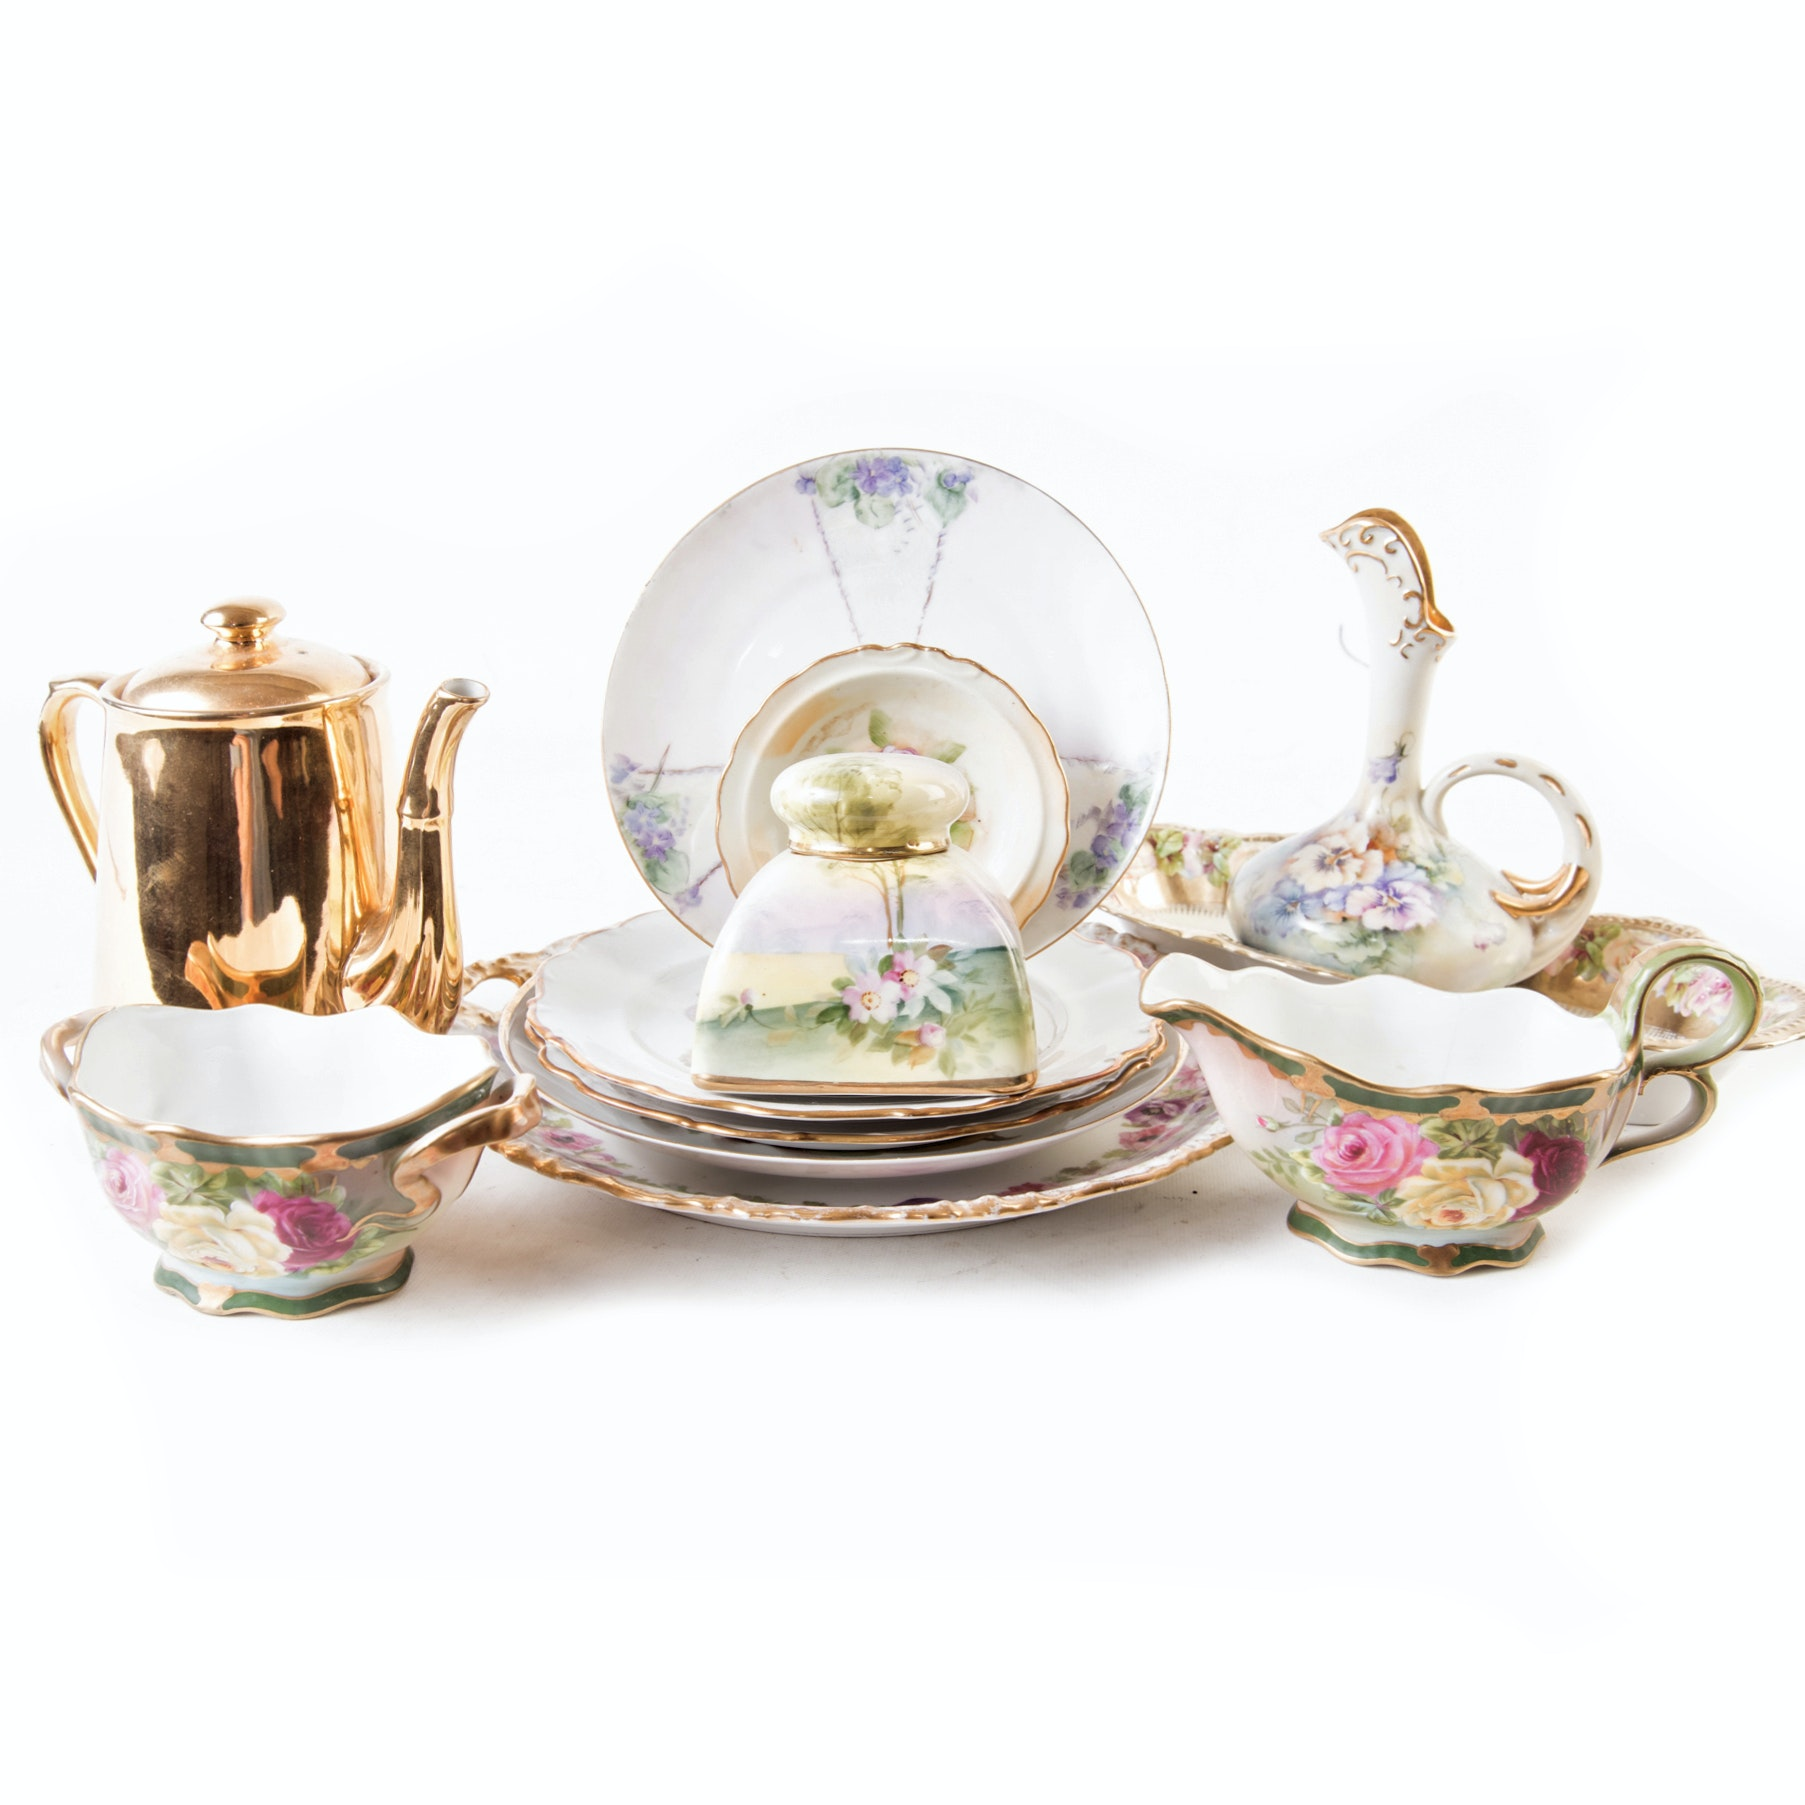 Vintage Hand Painted and Gilt Decorative Tableware